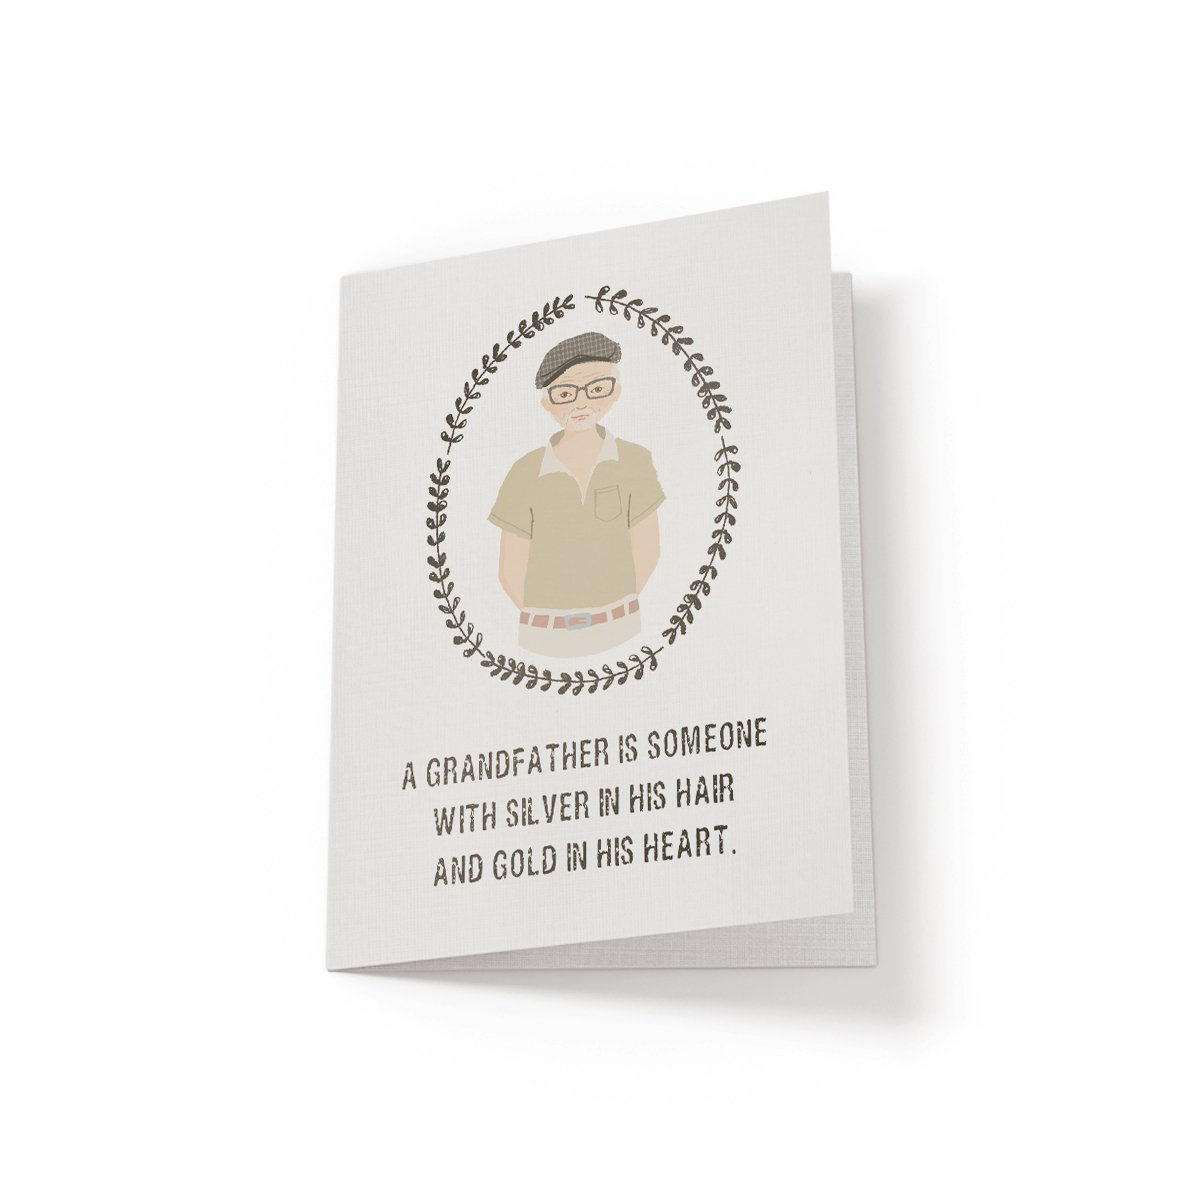 A Grandfather is someone with - Greeting Card - Netties Expressions